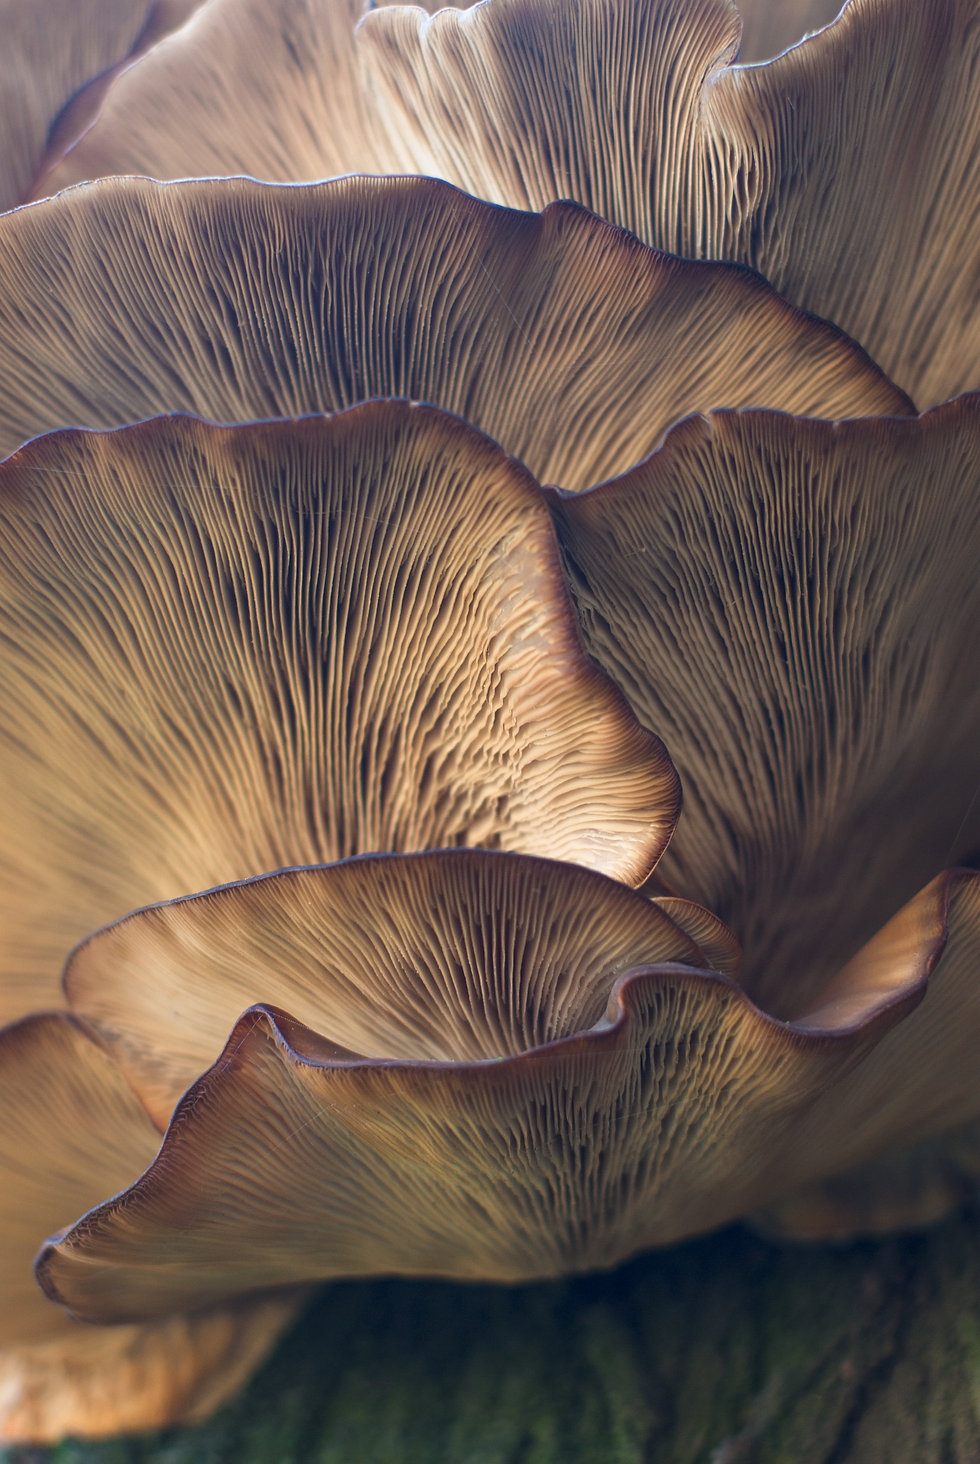 Mushroom closeup representing the richness and life in these thought leader's work.